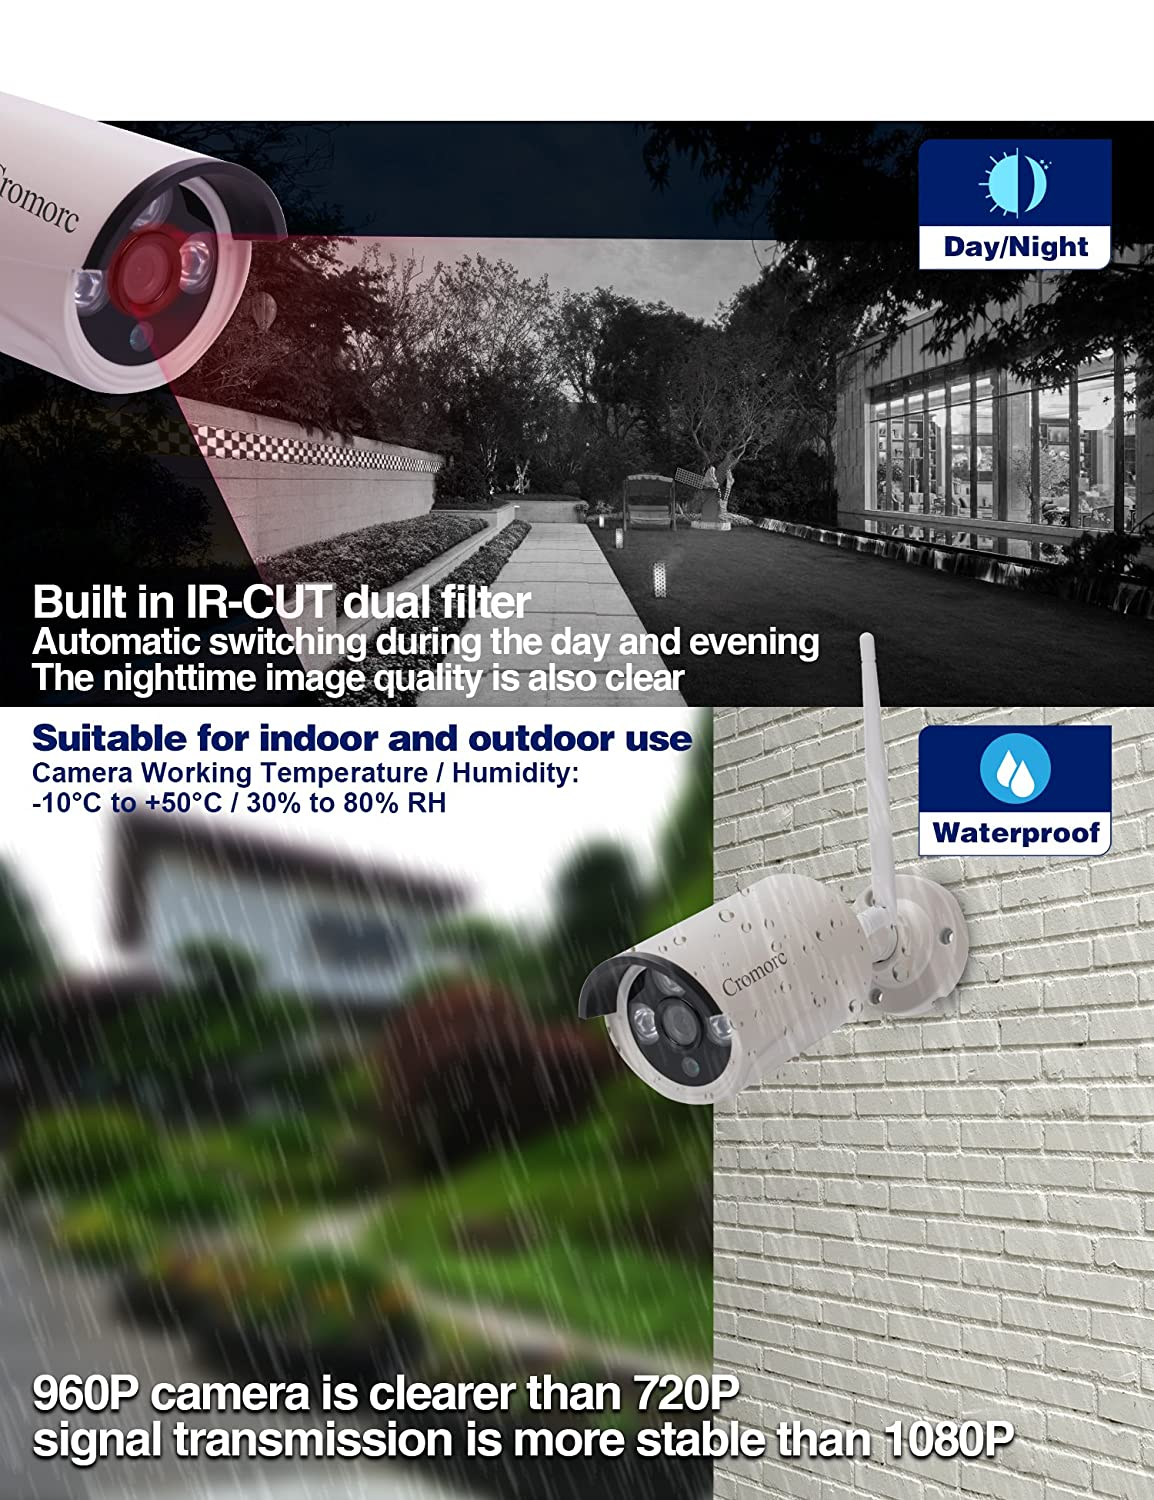 Cromorc 960P Surveillance Bullet Camera Waterproof Outdoor Indoor 3.6mm Lens IR Cut Day Night Vision with 5DB Antenna with Bracket with Power Adapter